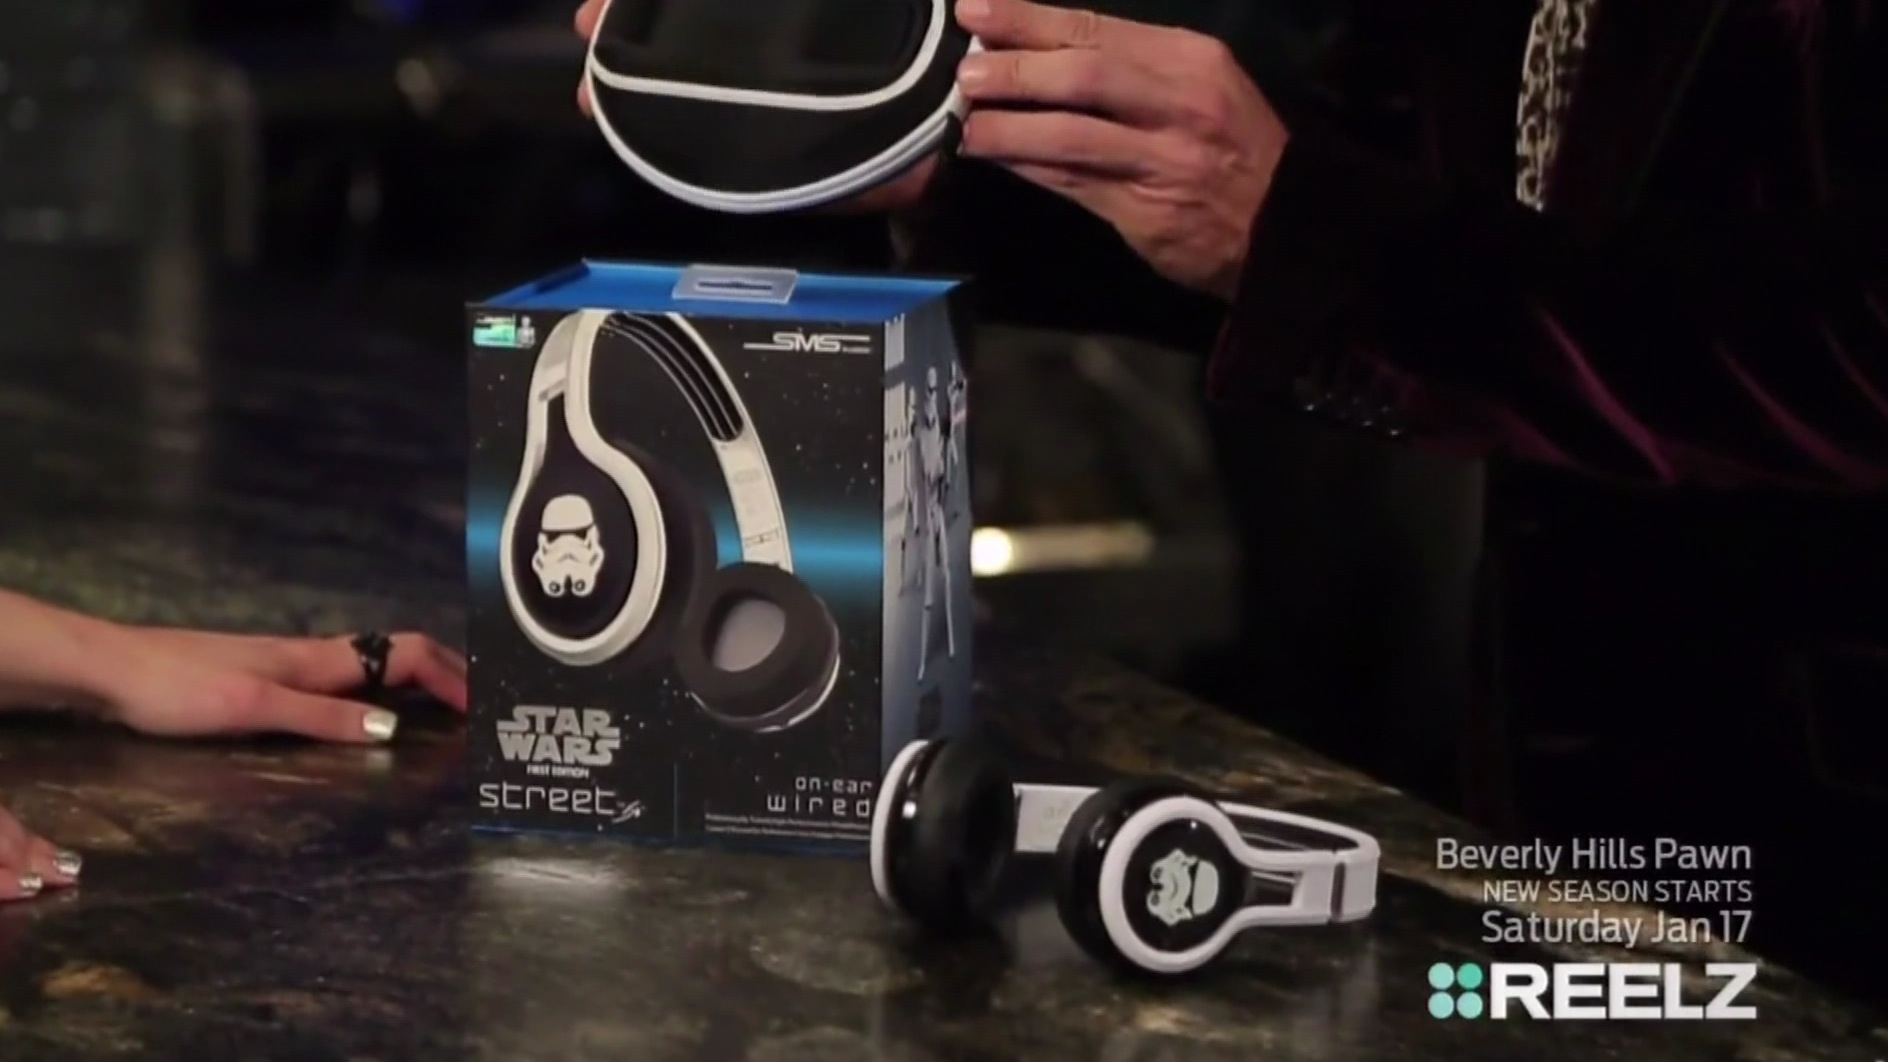 SMS Audio • Holiday Movie Preview Review